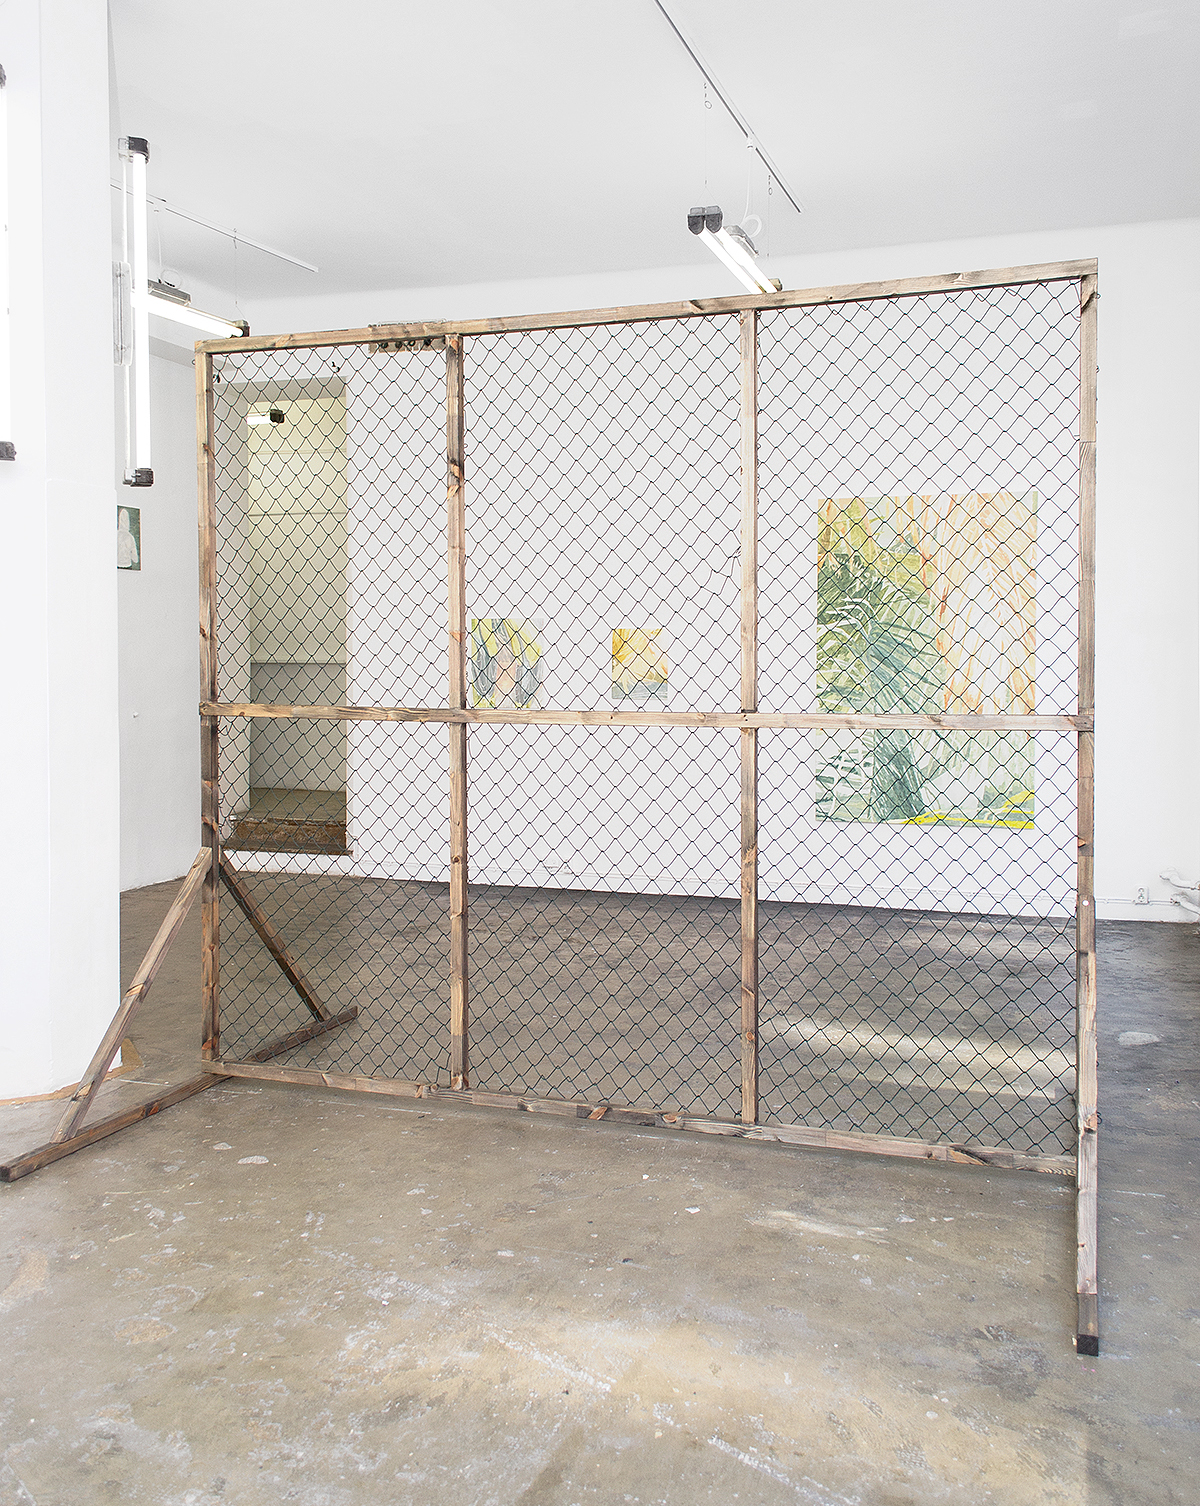 Lupine Wreath (2014), at Gallery Steinsland Berliner, Stockholm, Sweden. Installation view